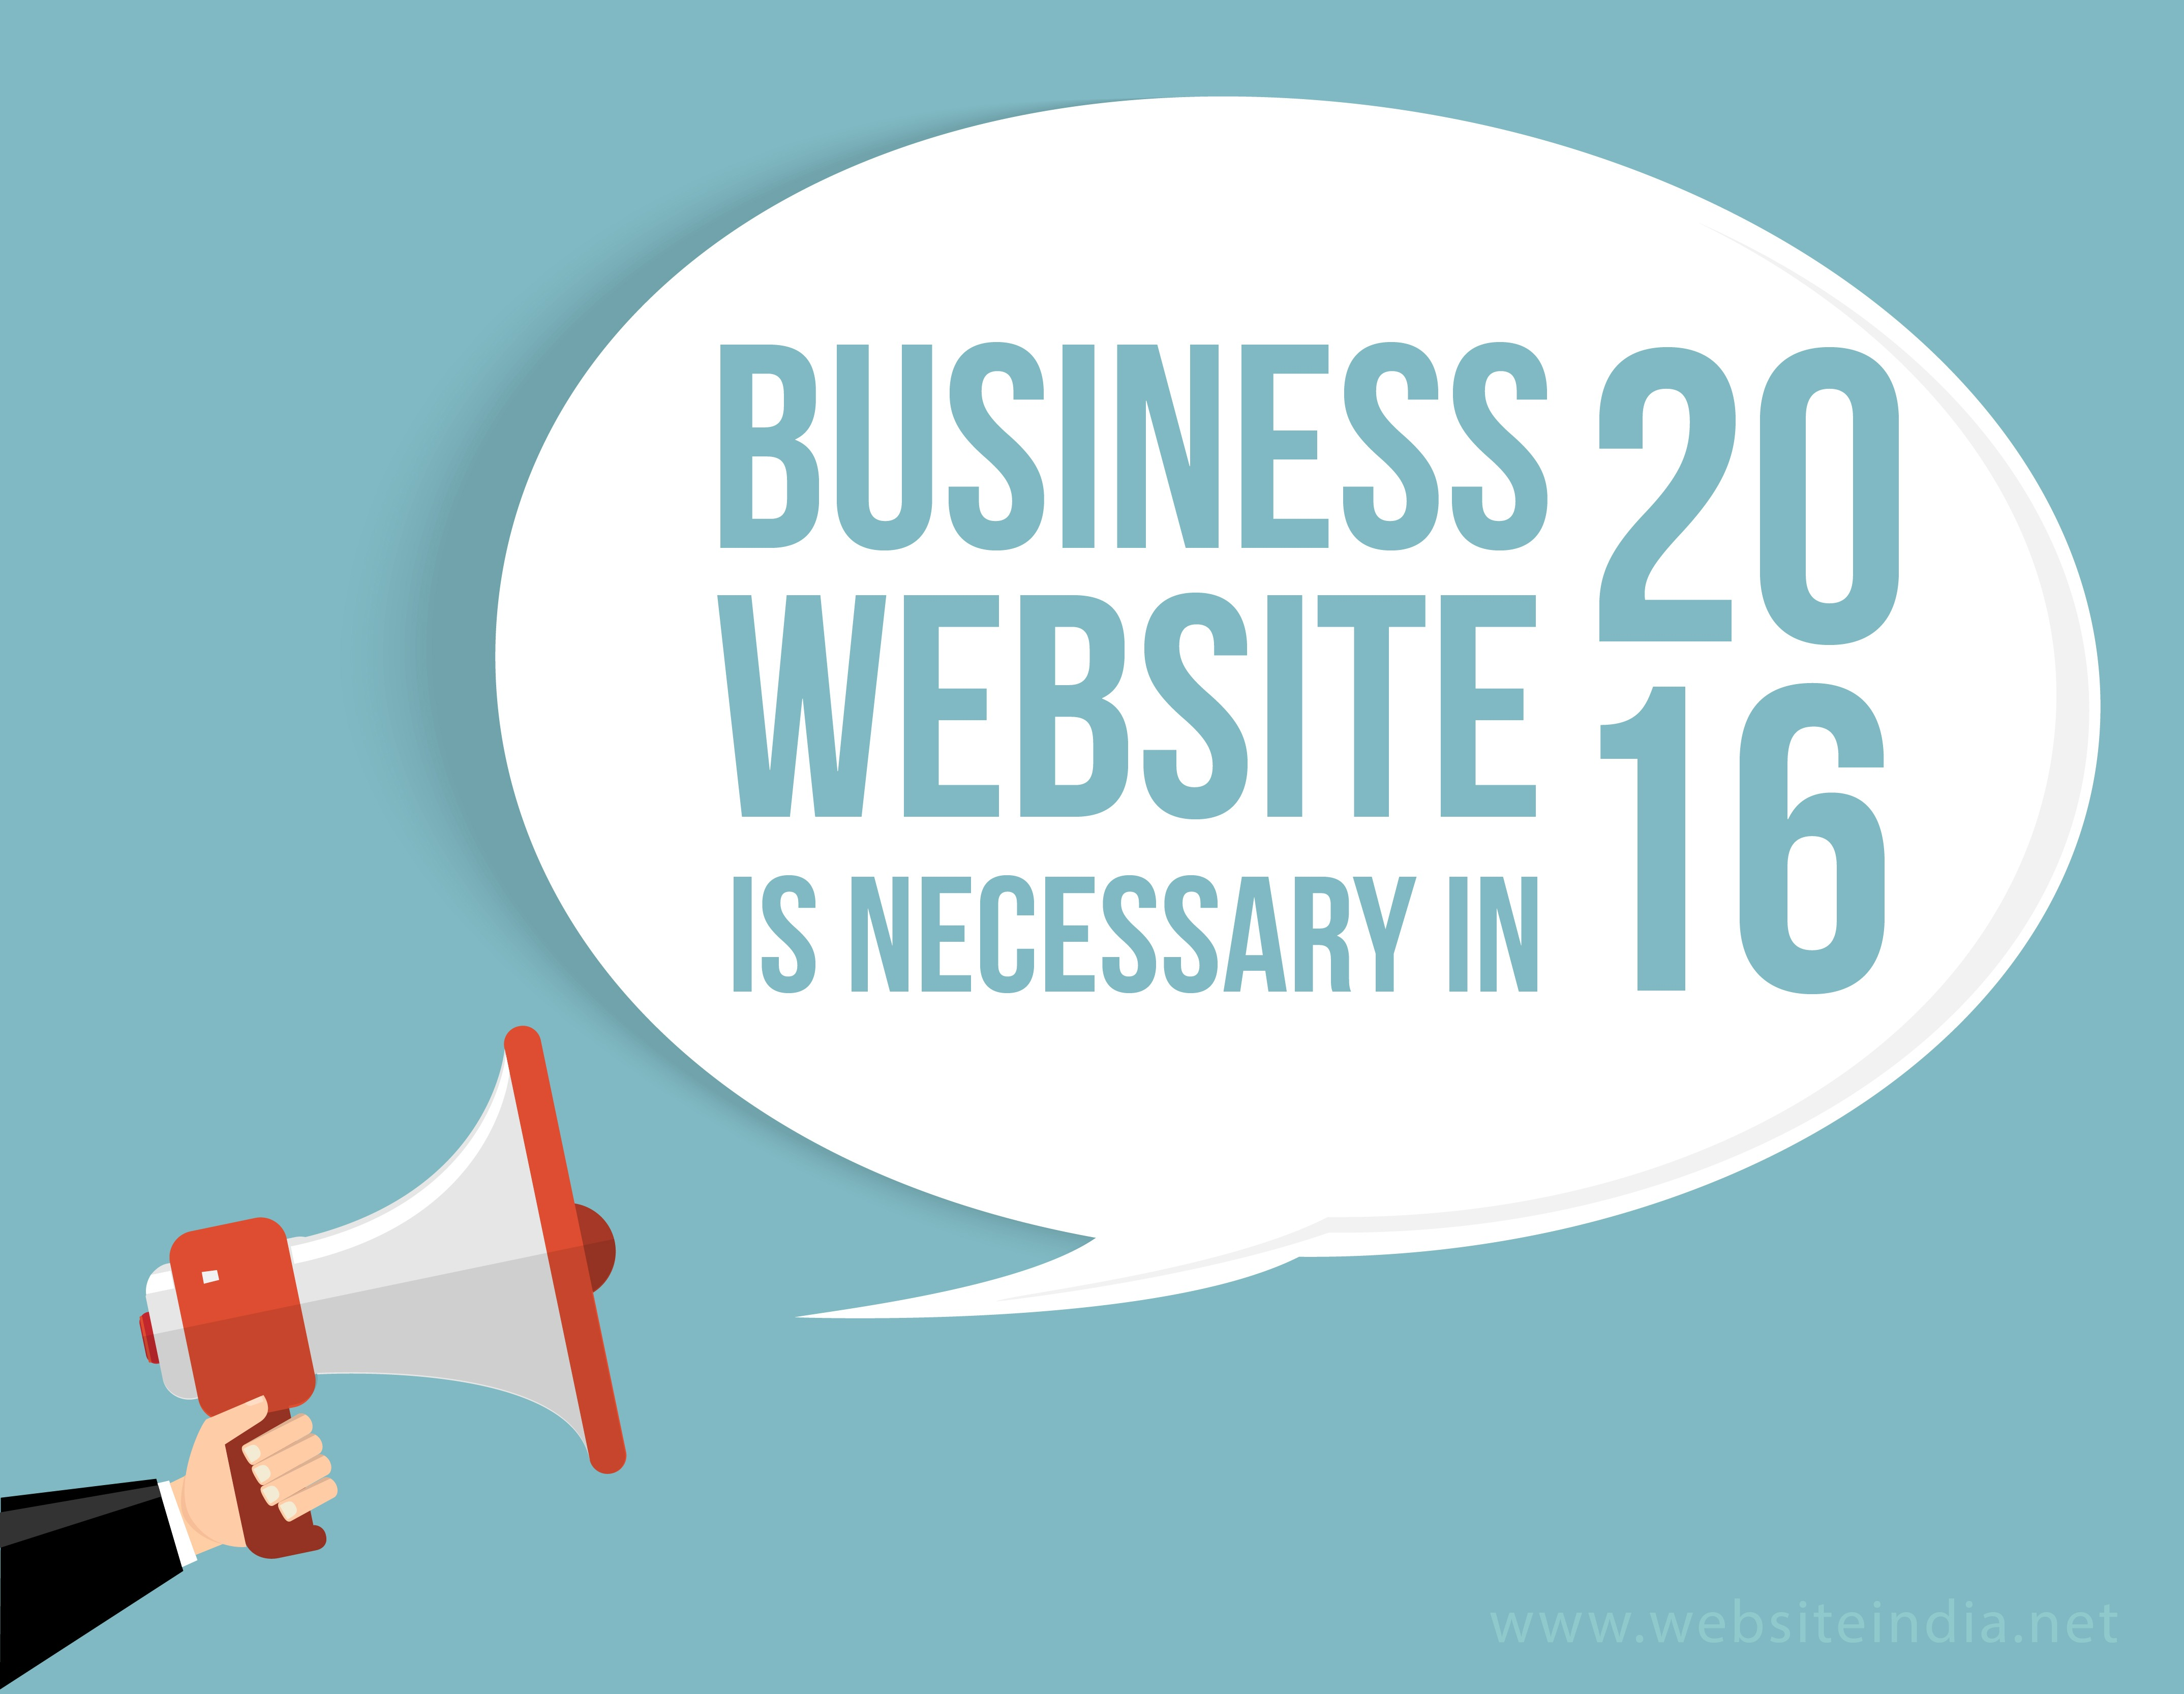 Business Website is Necessary in 2016